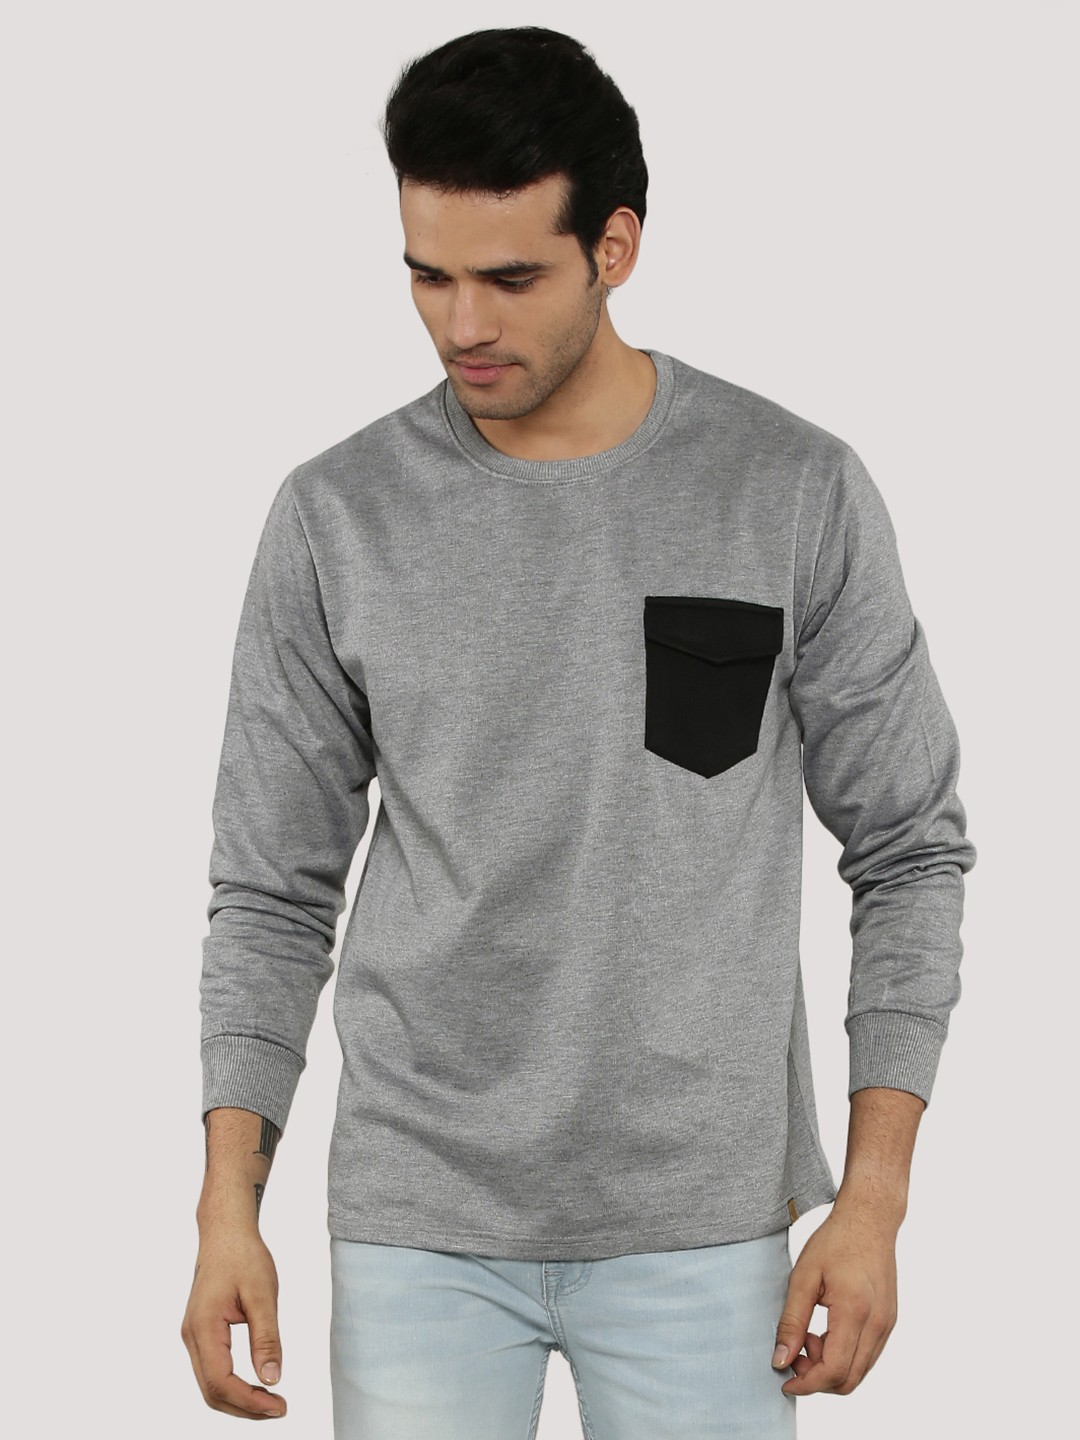 Blotch Grey Contrast Snap Pocket Sweatshirt 1